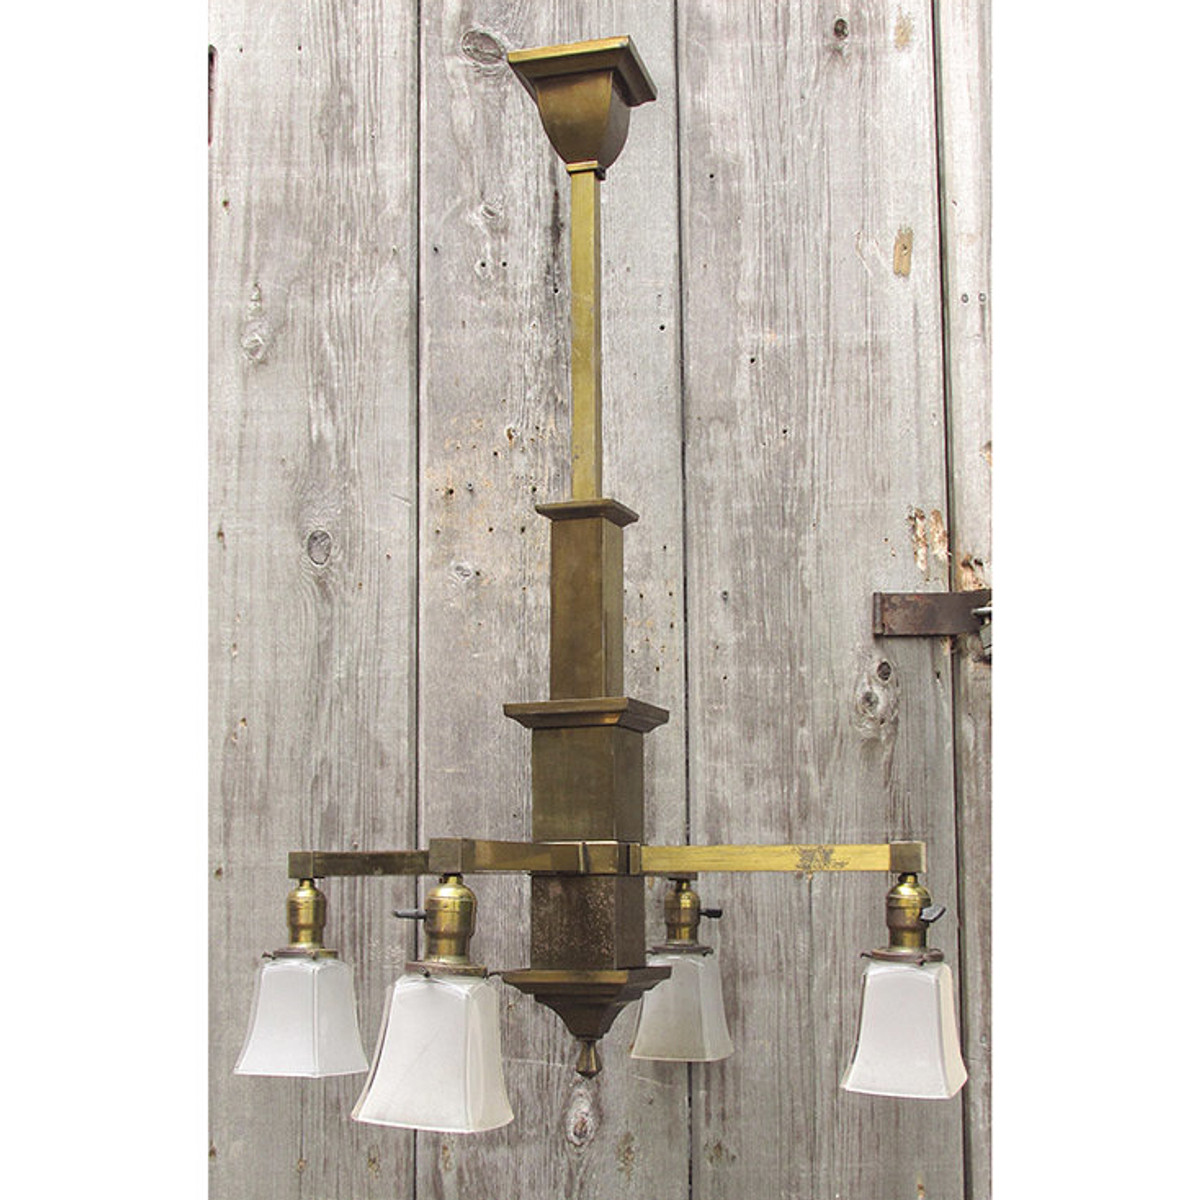 L15165 - Antique Arts and Crafts Four Arm Hanging Fixture